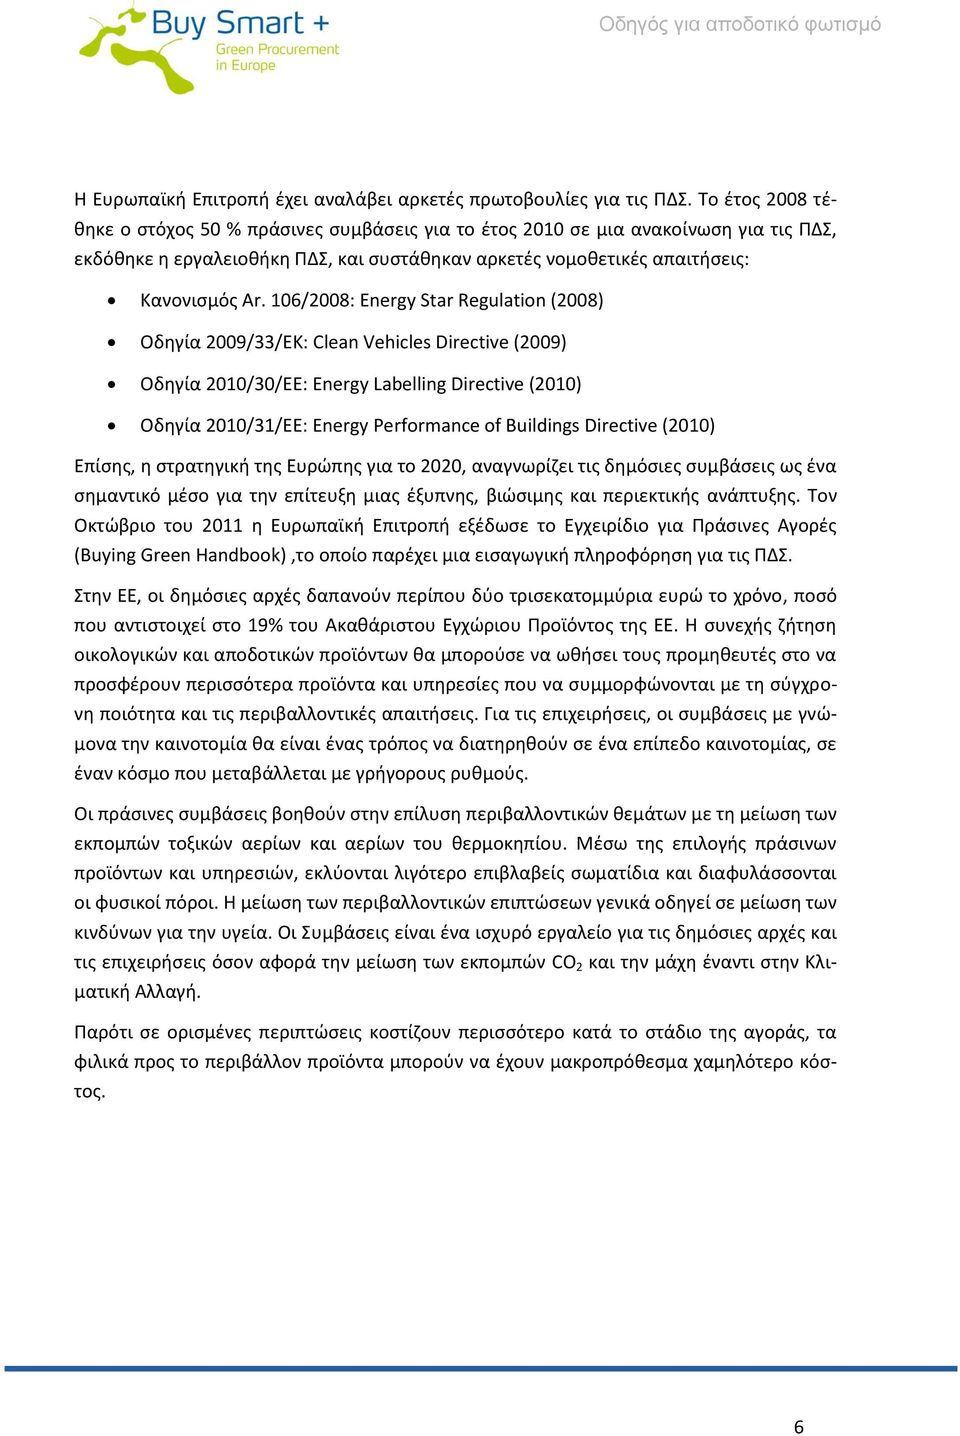 106/2008: Energy Star Regulation (2008) Οδηγία 2009/33/EK: Clean Vehicles Directive (2009) Οδηγία 2010/30/EE: Energy Labelling Directive (2010) Οδηγία 2010/31/EE: Energy Performance of Buildings